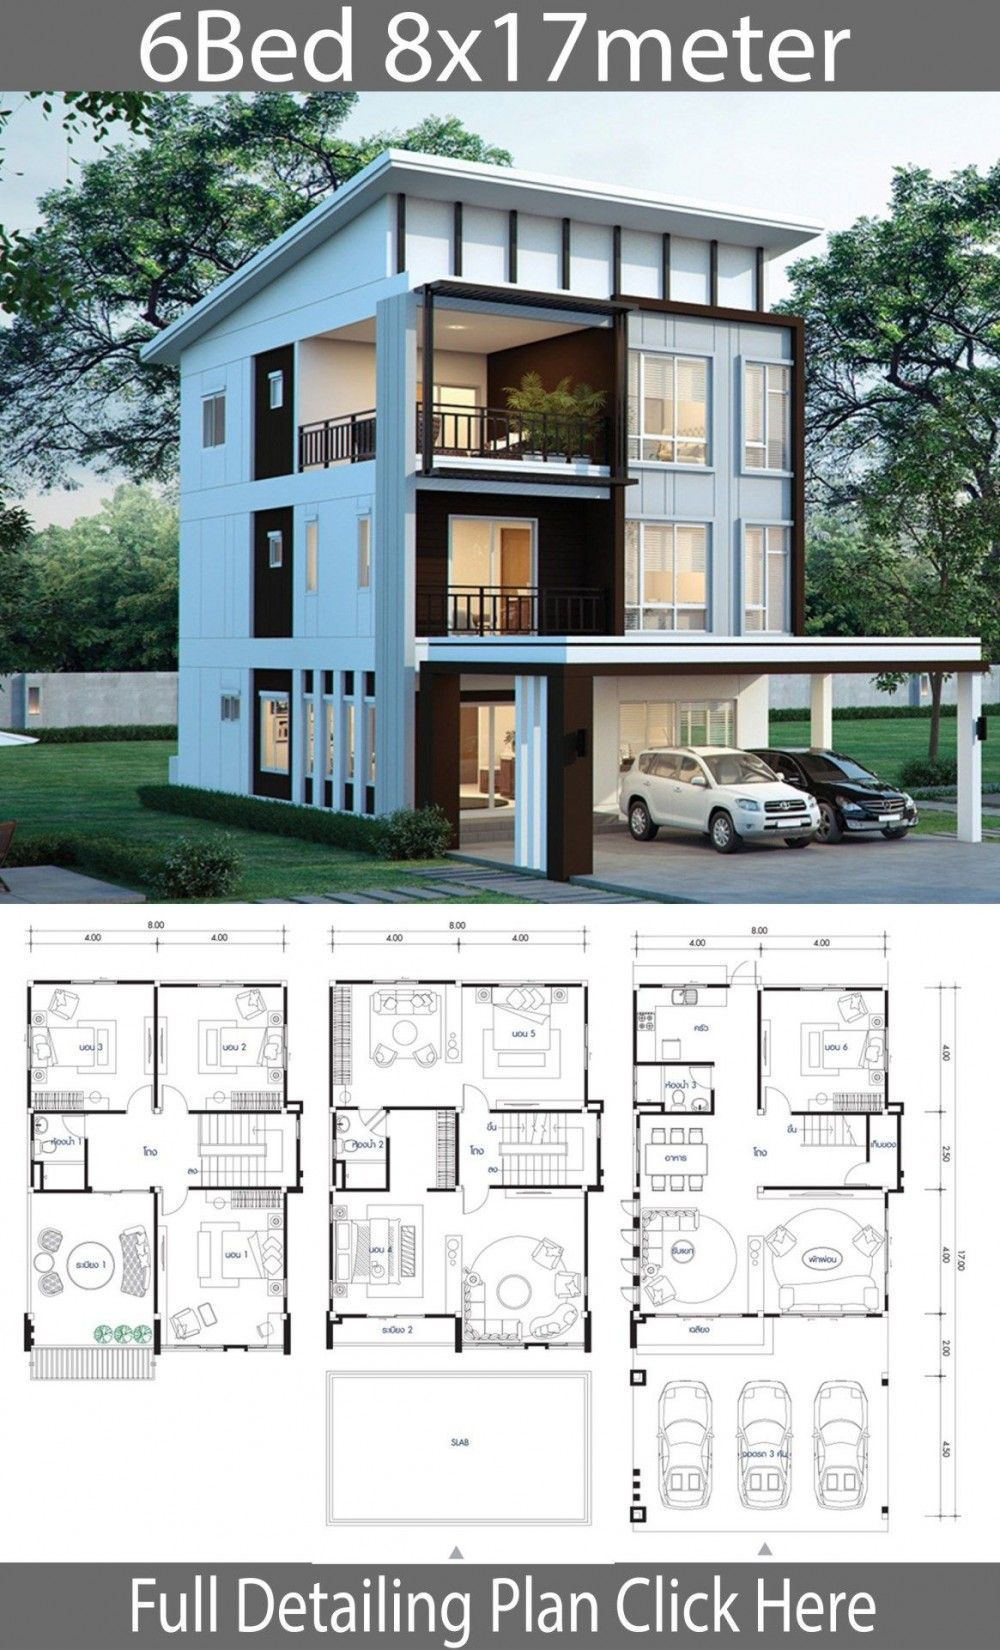 Plan De Maison 8x17m Avec 6 Chambres Sims House Plans House Construction Plan Modern House Plans